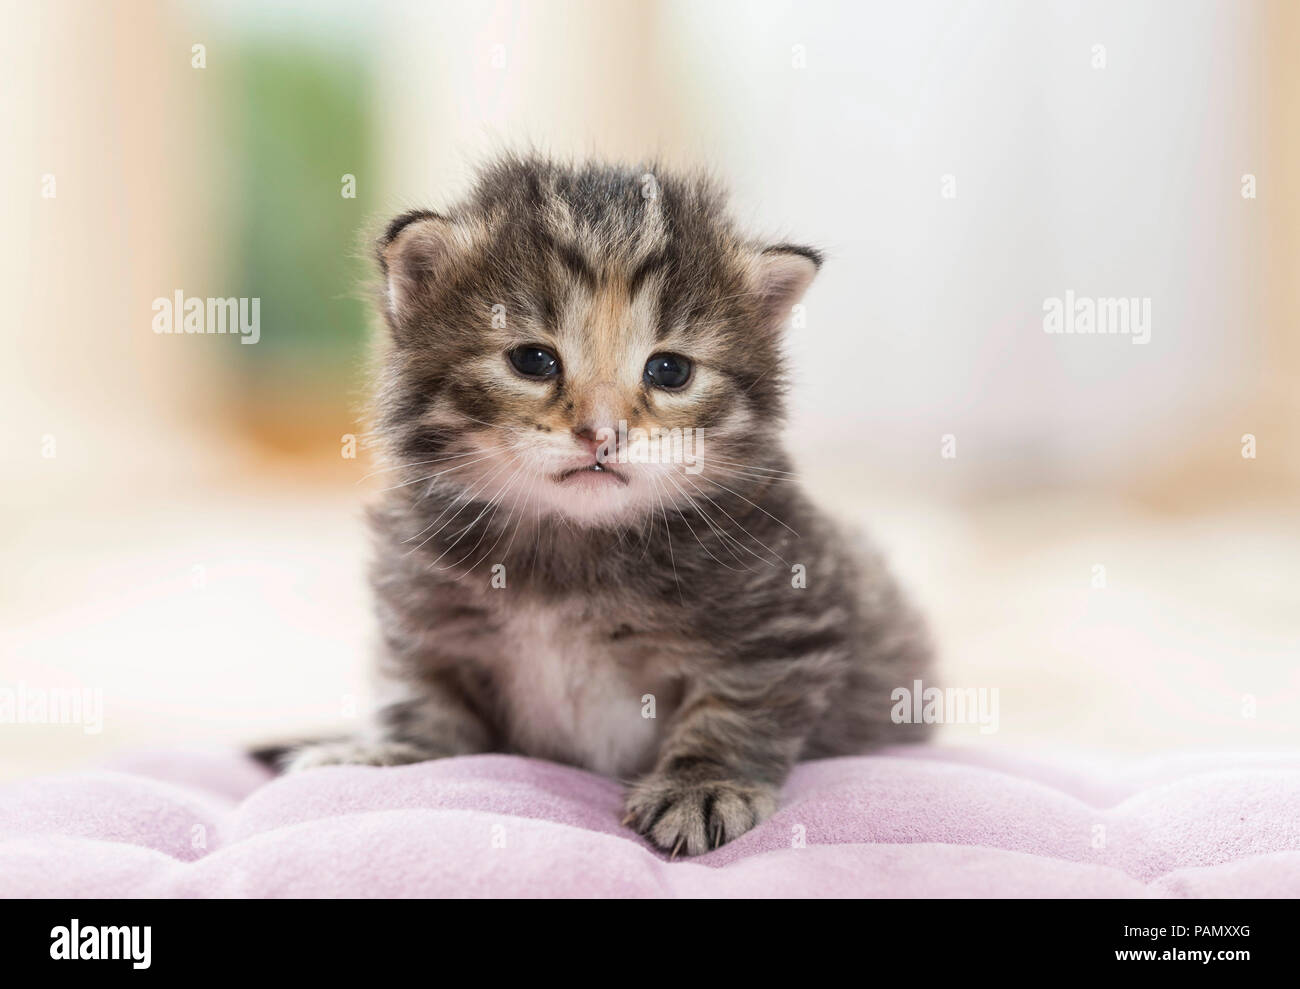 Norwegian Forest Cat. Tabby kitten (5 weeks old) lying on a cushion. Germany, - Stock Image